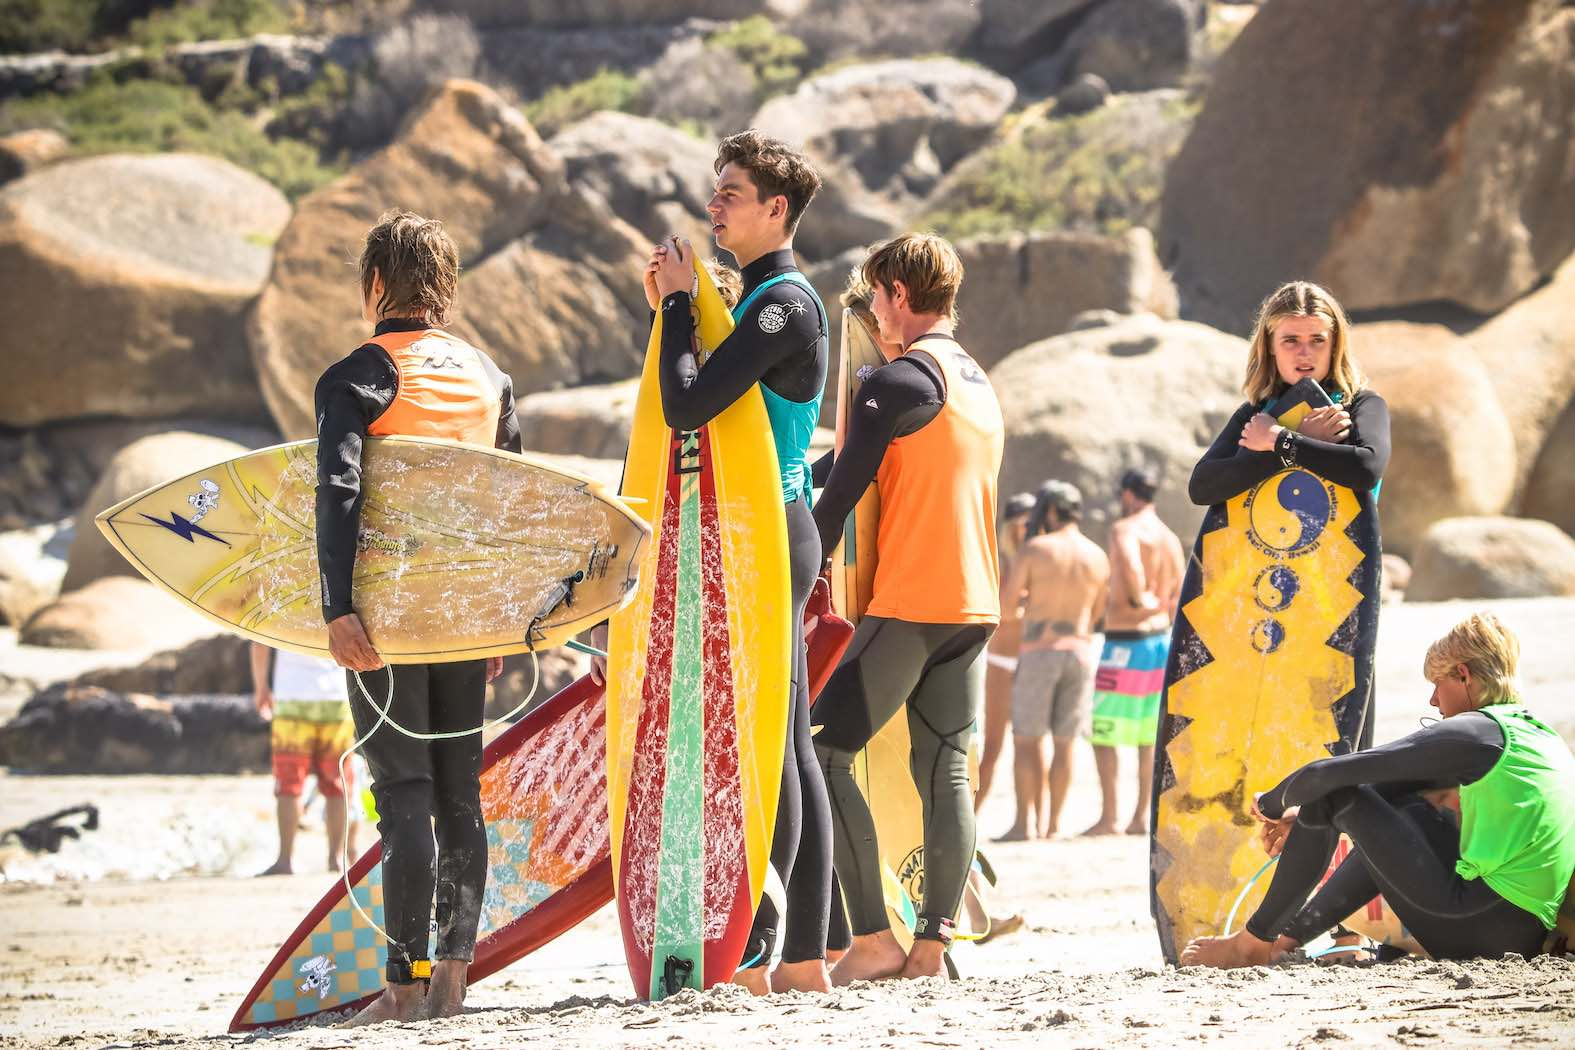 Review from the 2018 Rolling Retro surfing event